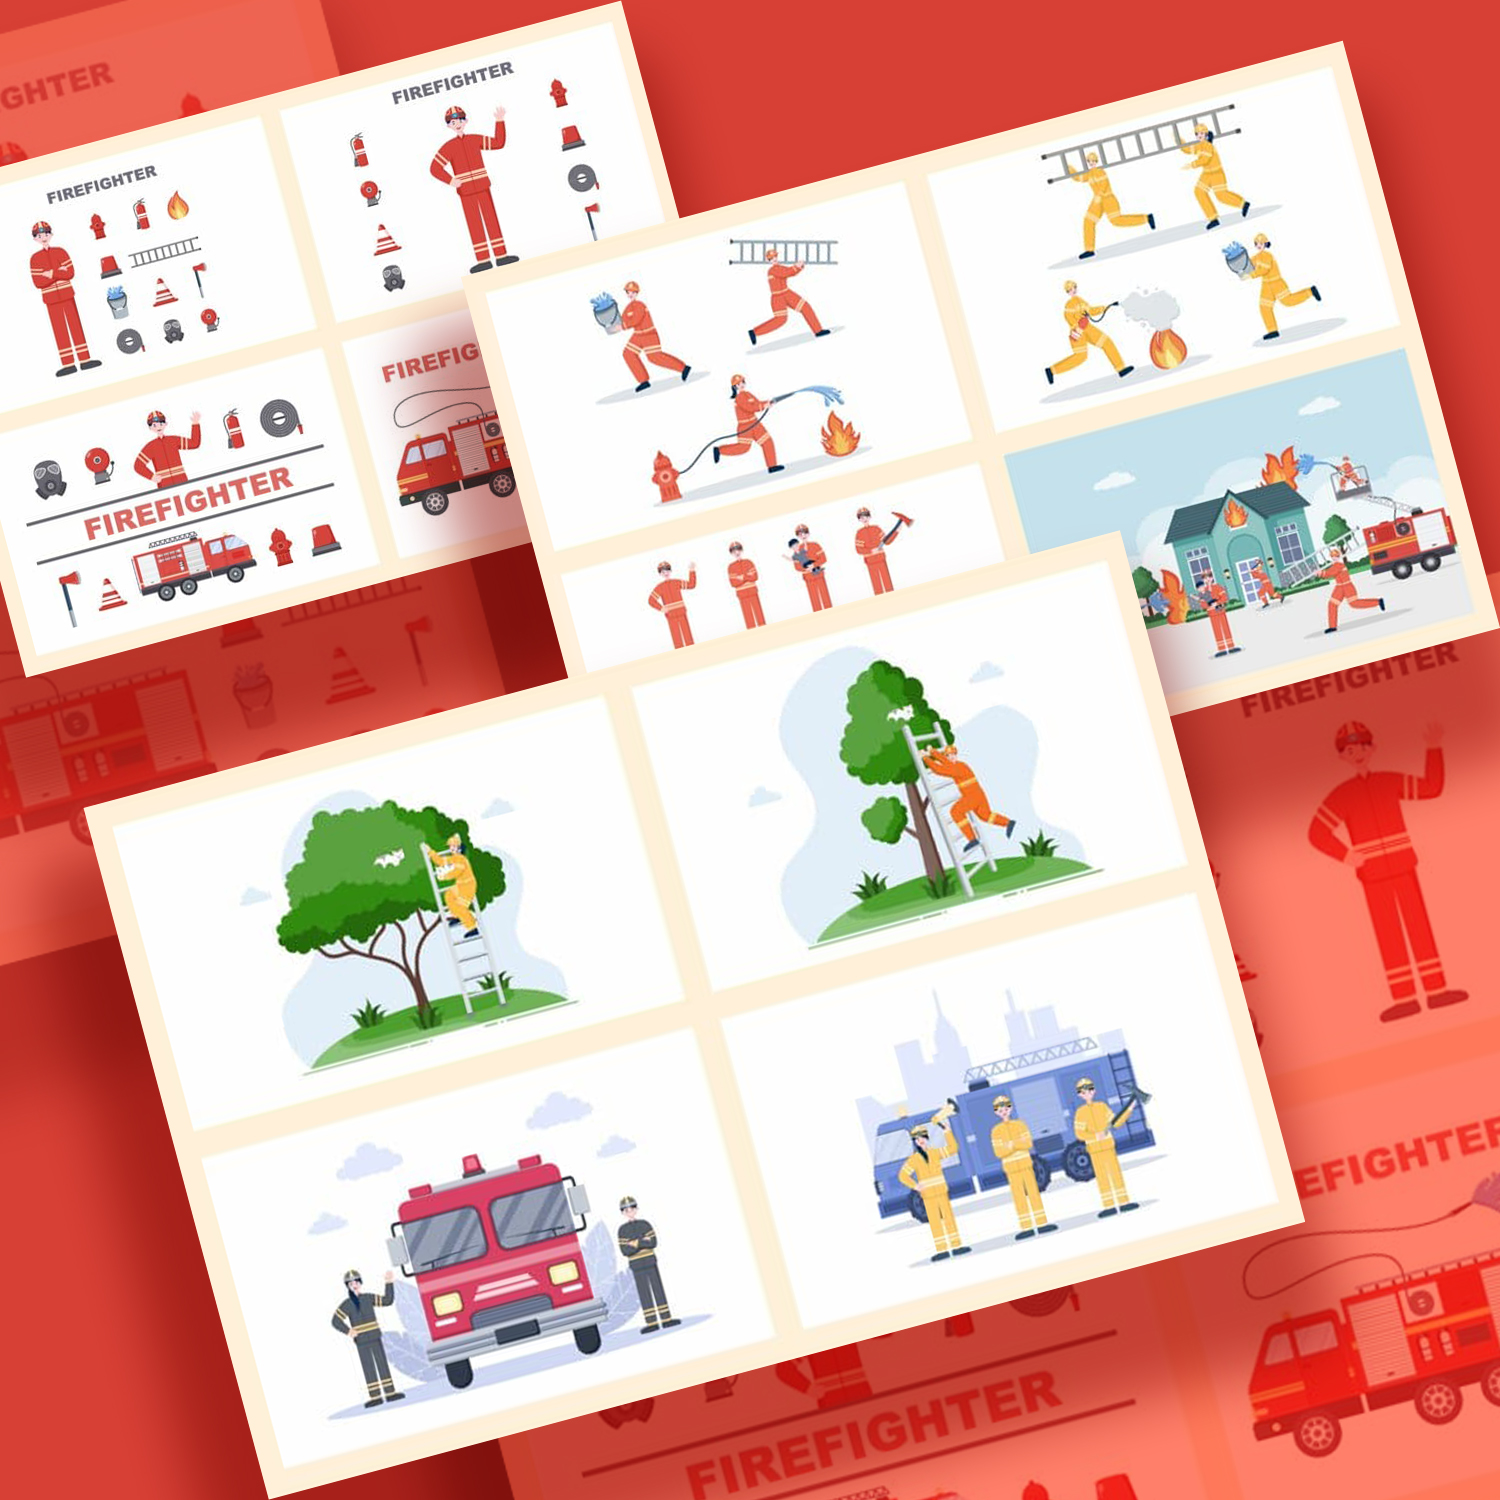 20 Group of Firefighters Illustration preview image.